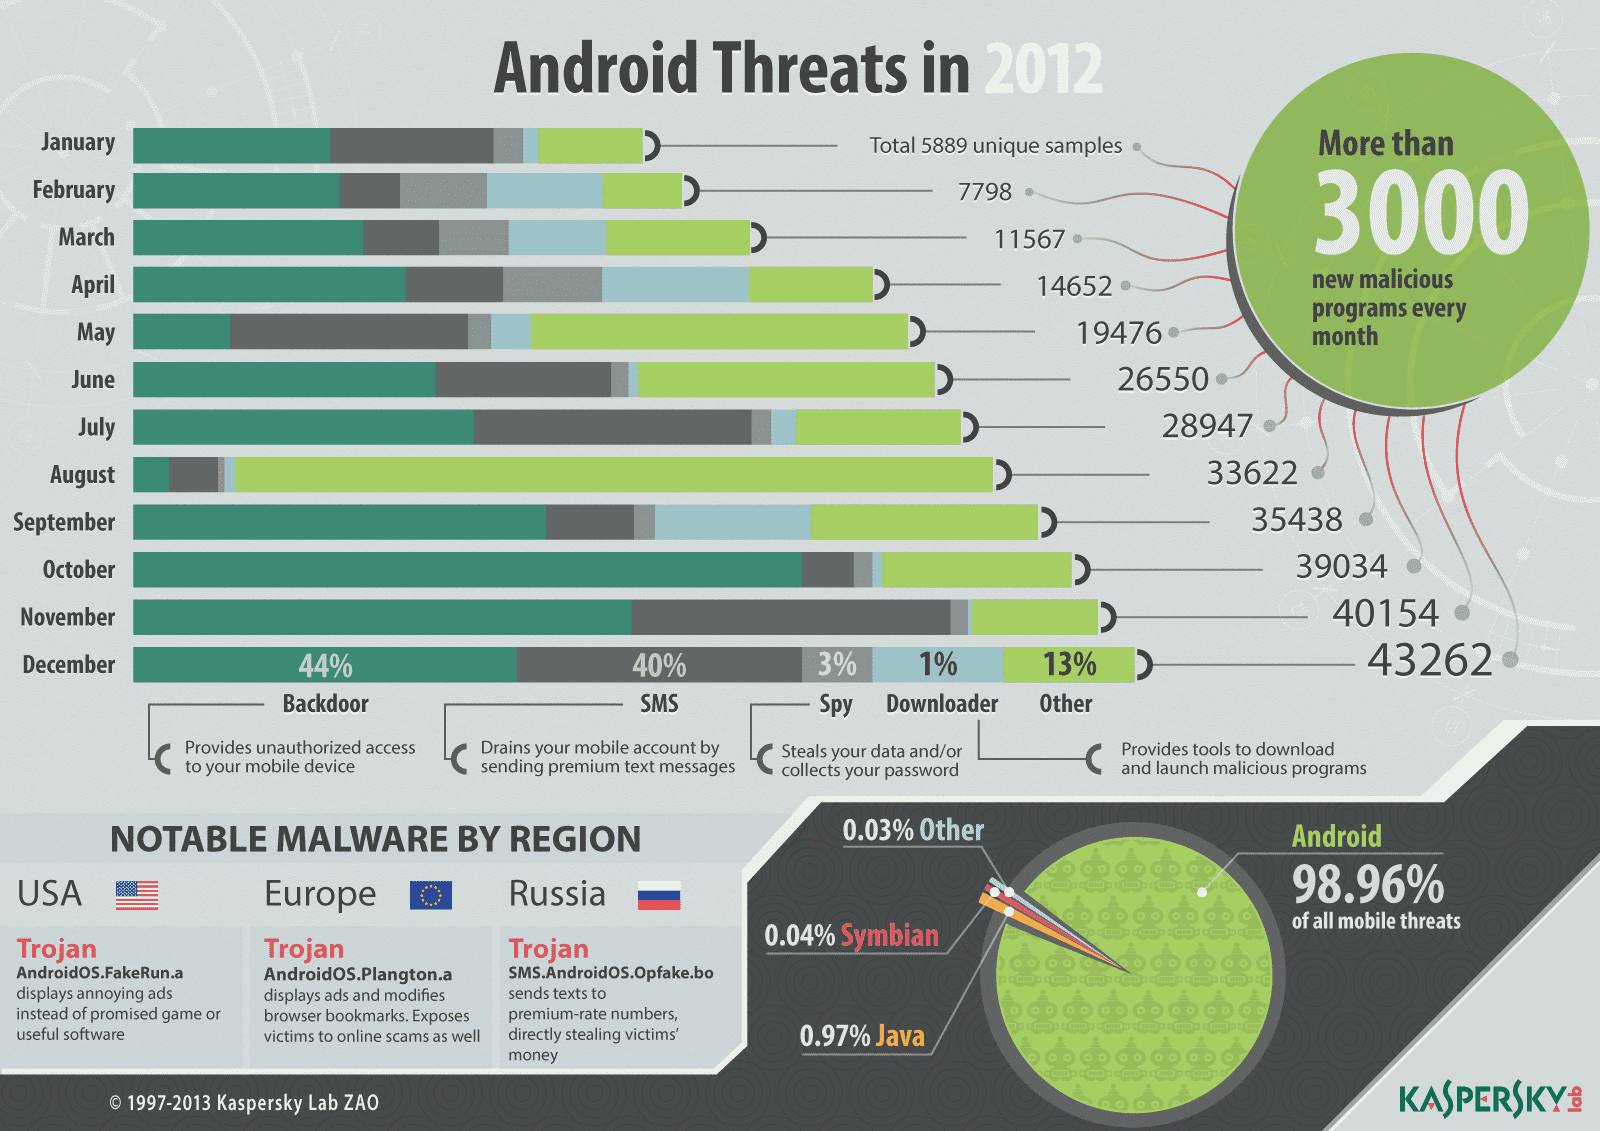 android threats in 2012 infographic